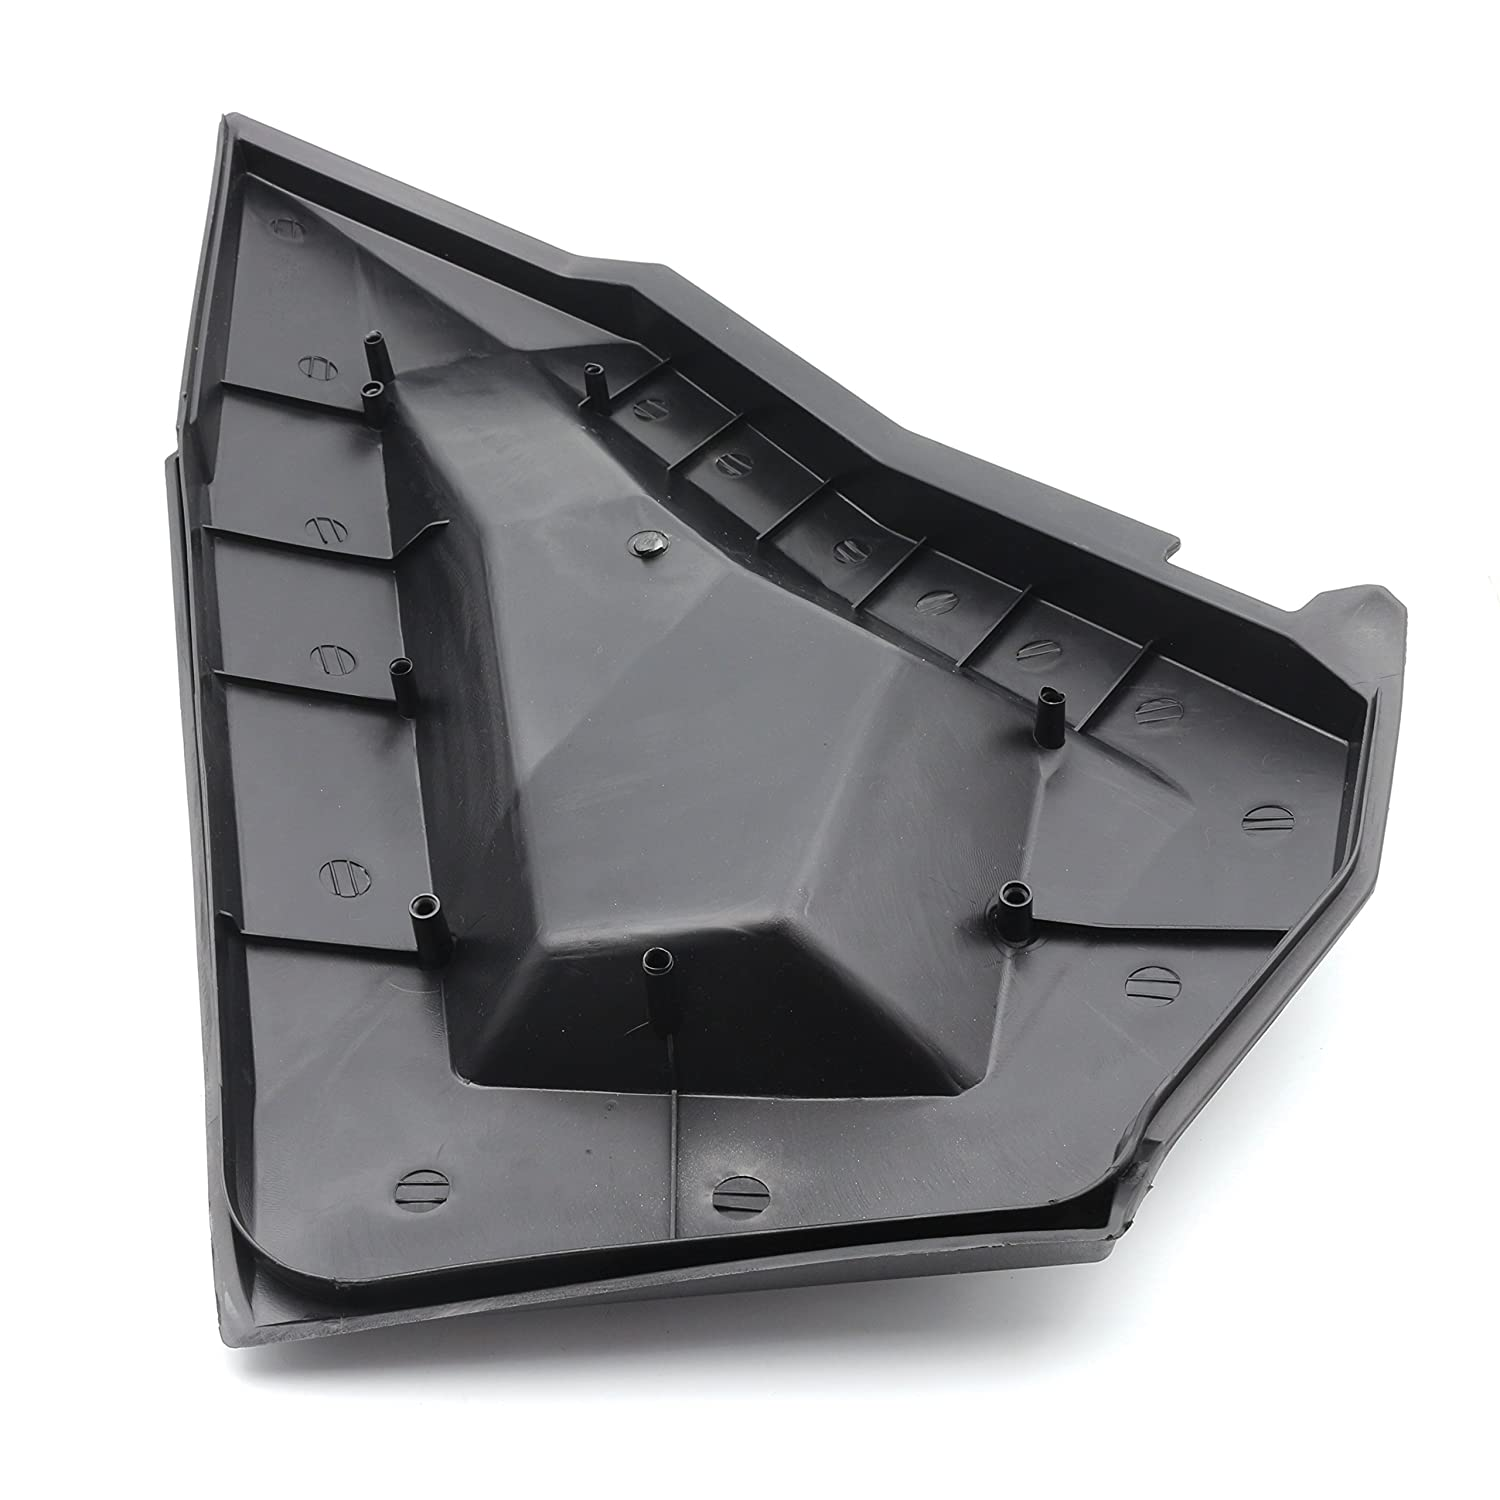 CPOWACE Lower Door Inserts Fit For Polaris RZR XP 1000 Turbo S 900 2014-2016